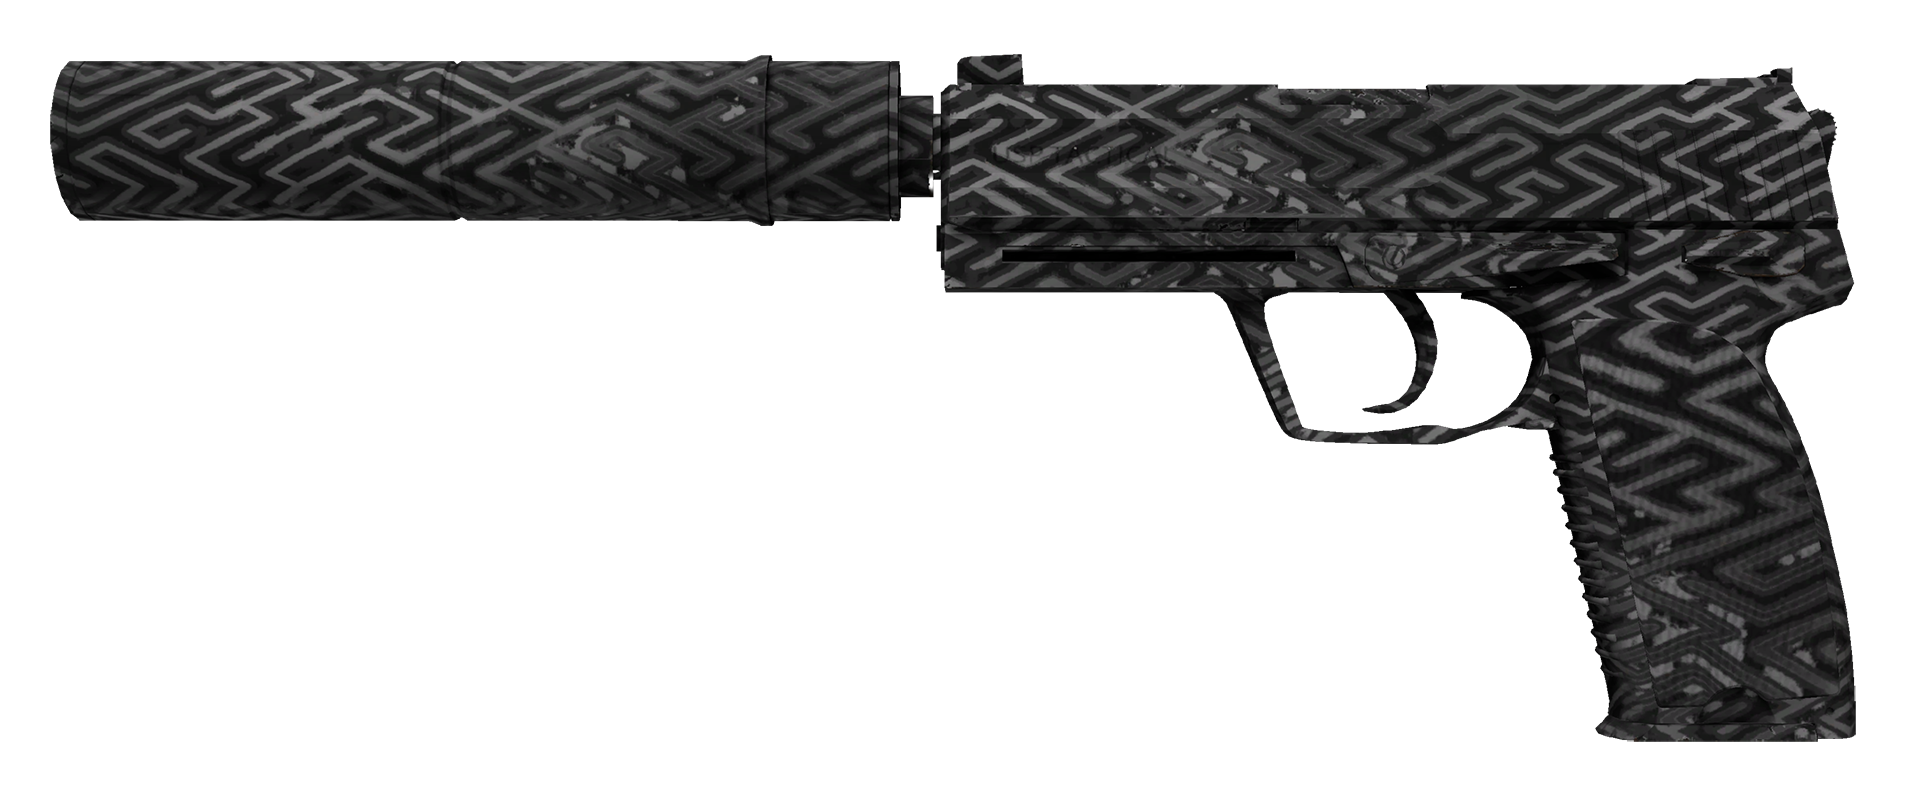 USP-S Pathfinder Large Rendering